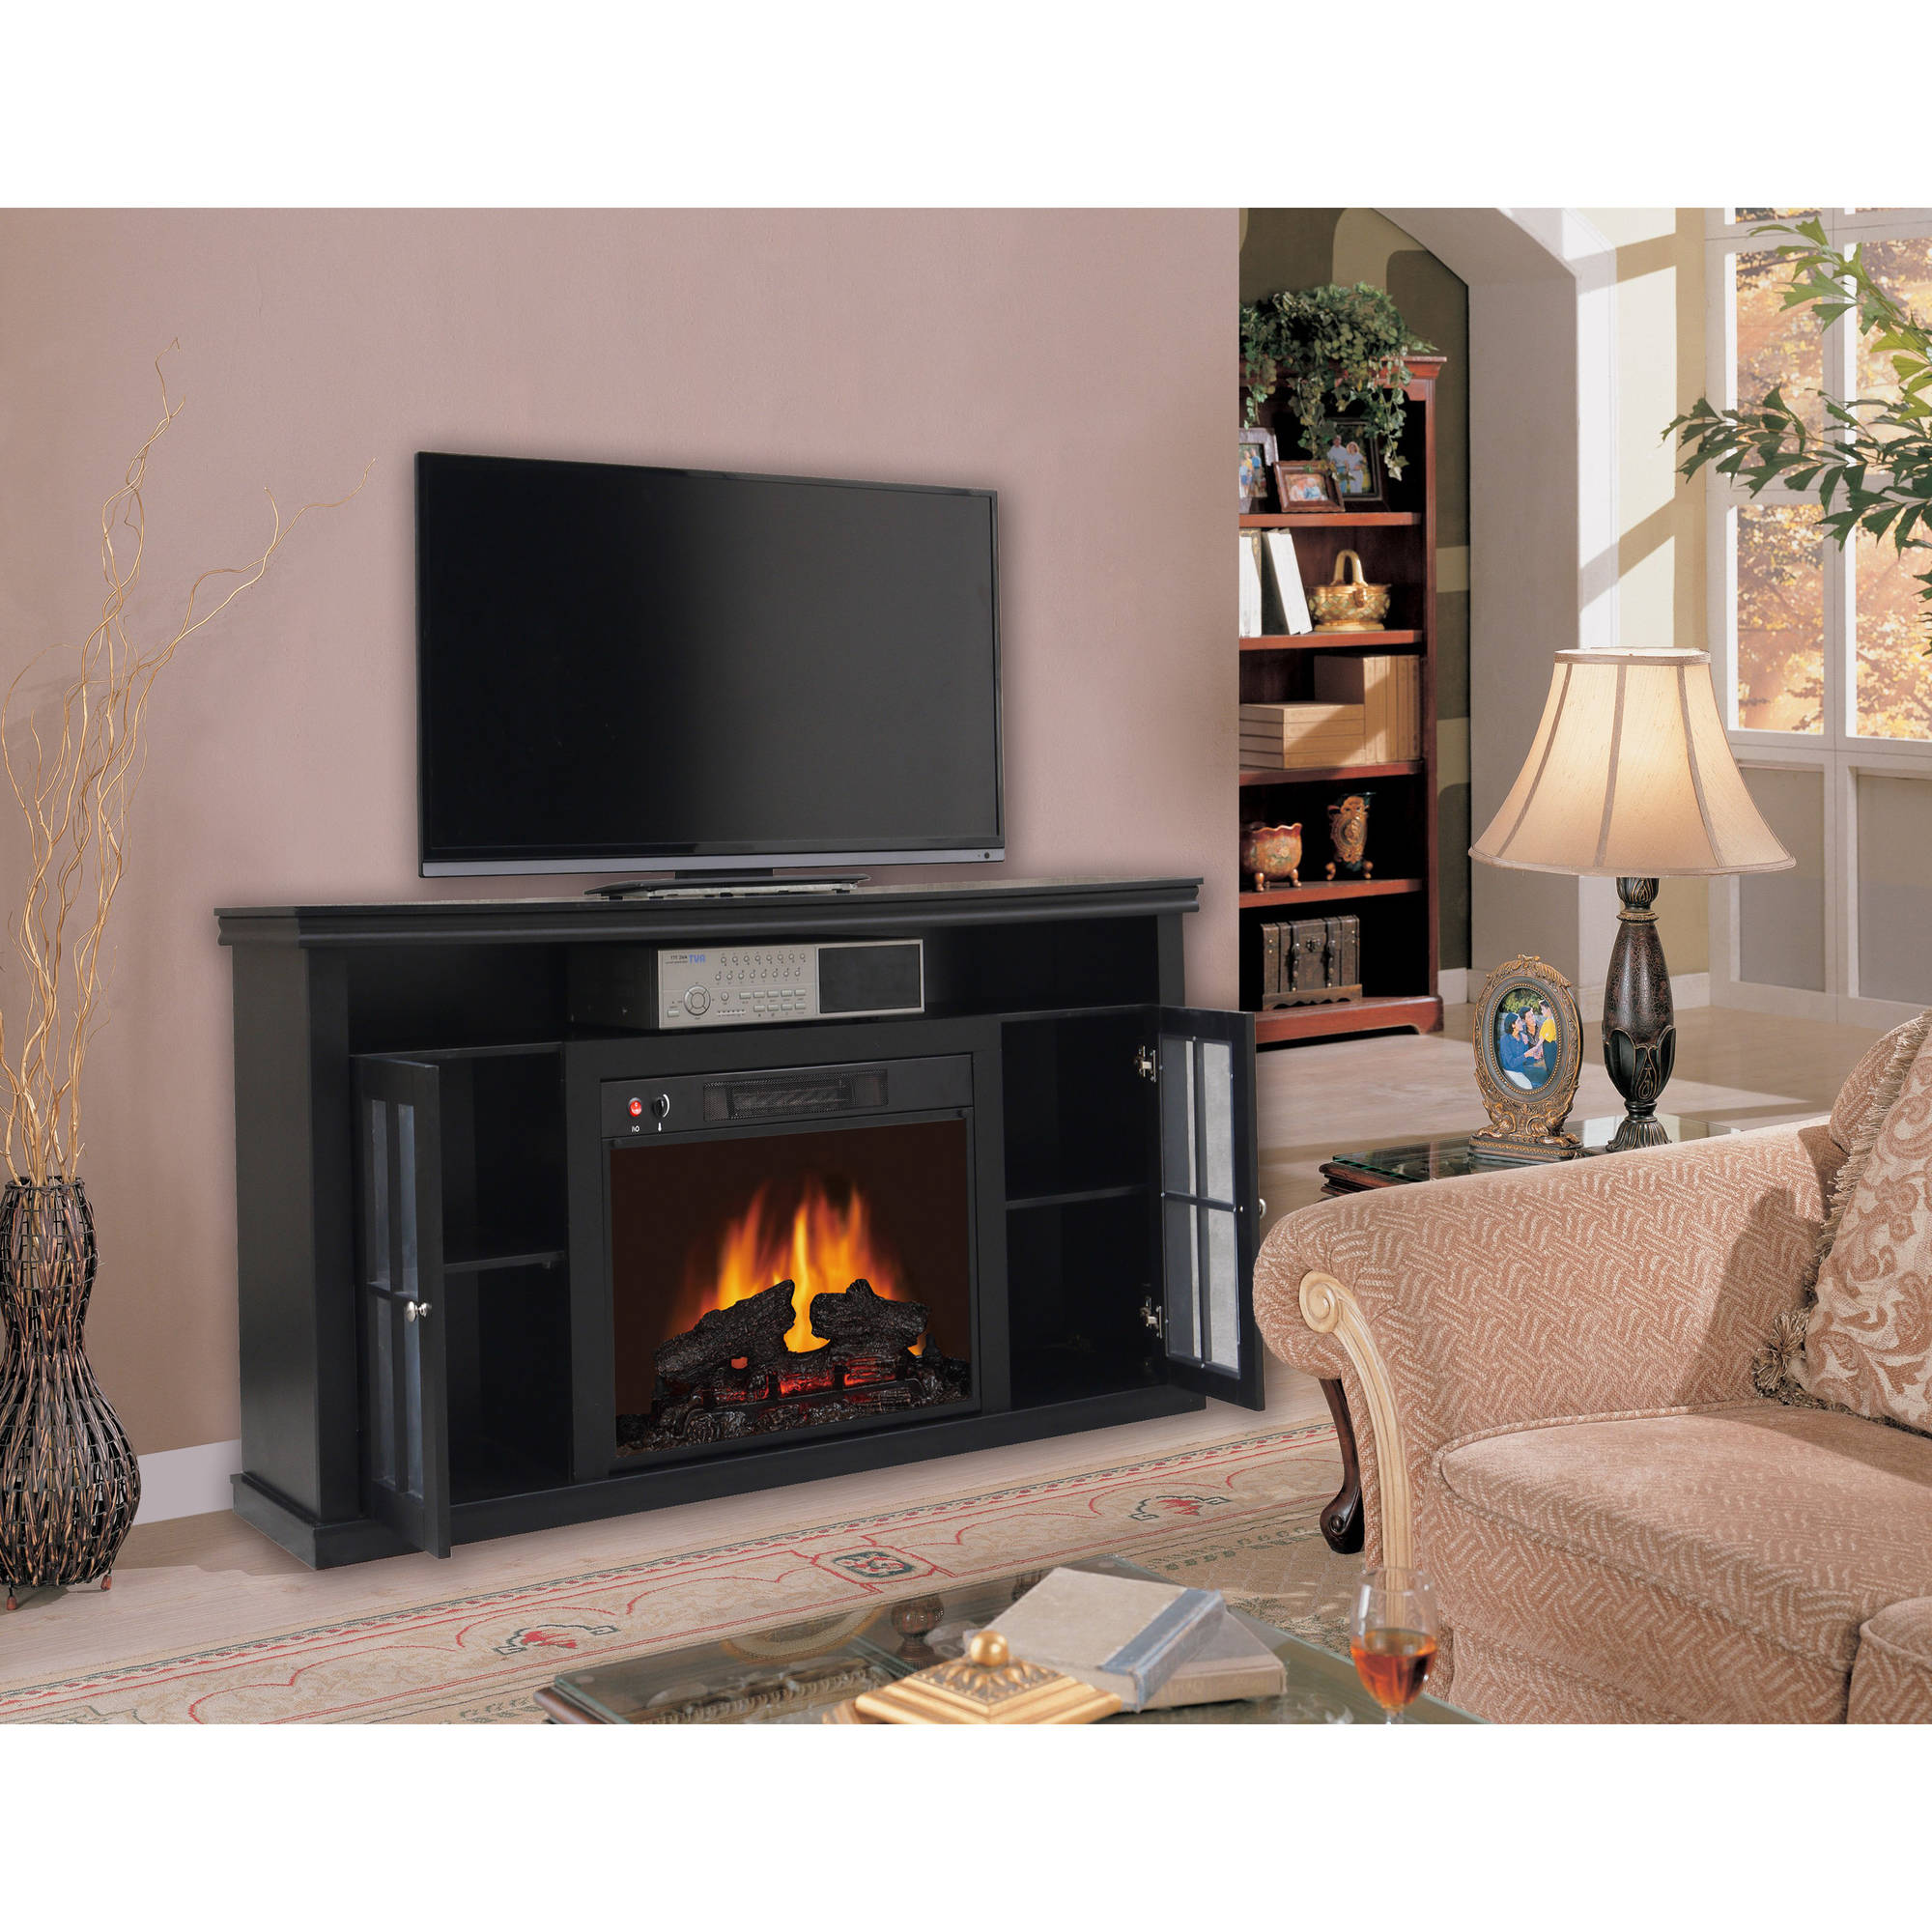 Walmart Black Electric Fireplace 60 Black Electric Fireplace Heater